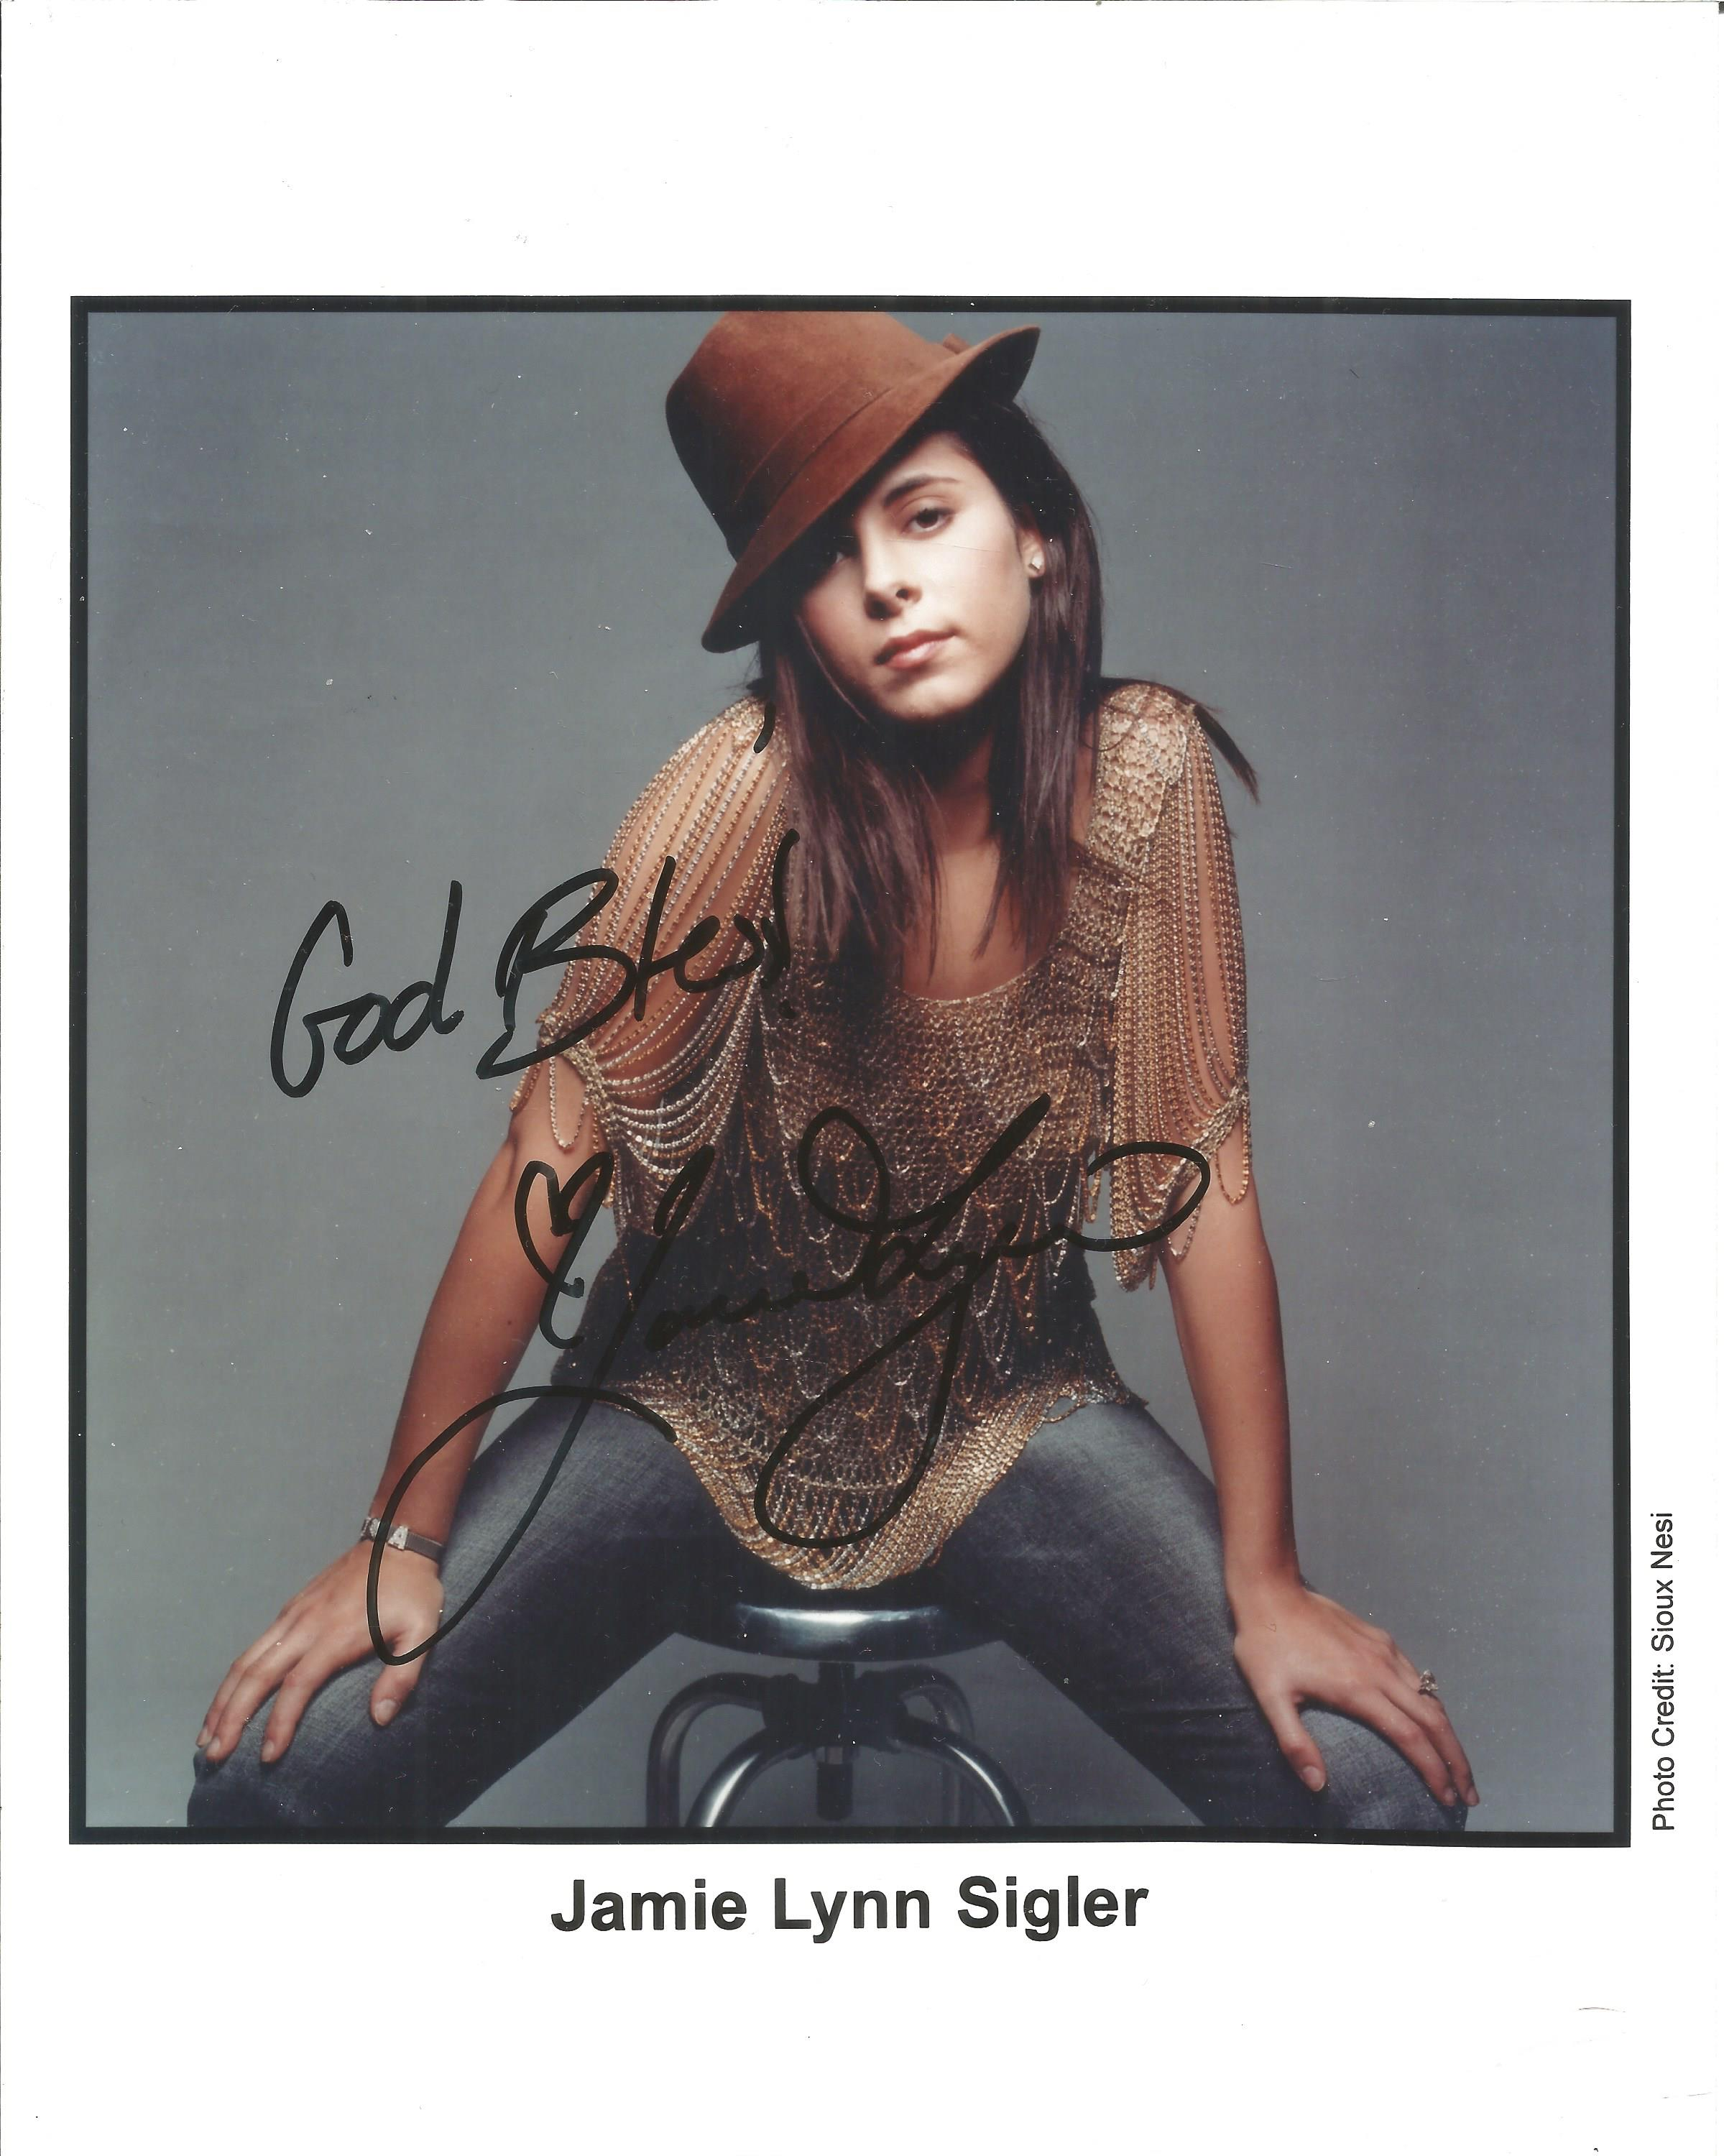 Jamie Lynn Sigler signed 10x8 colour photo. Good Condition. All autographs are genuine hand signed